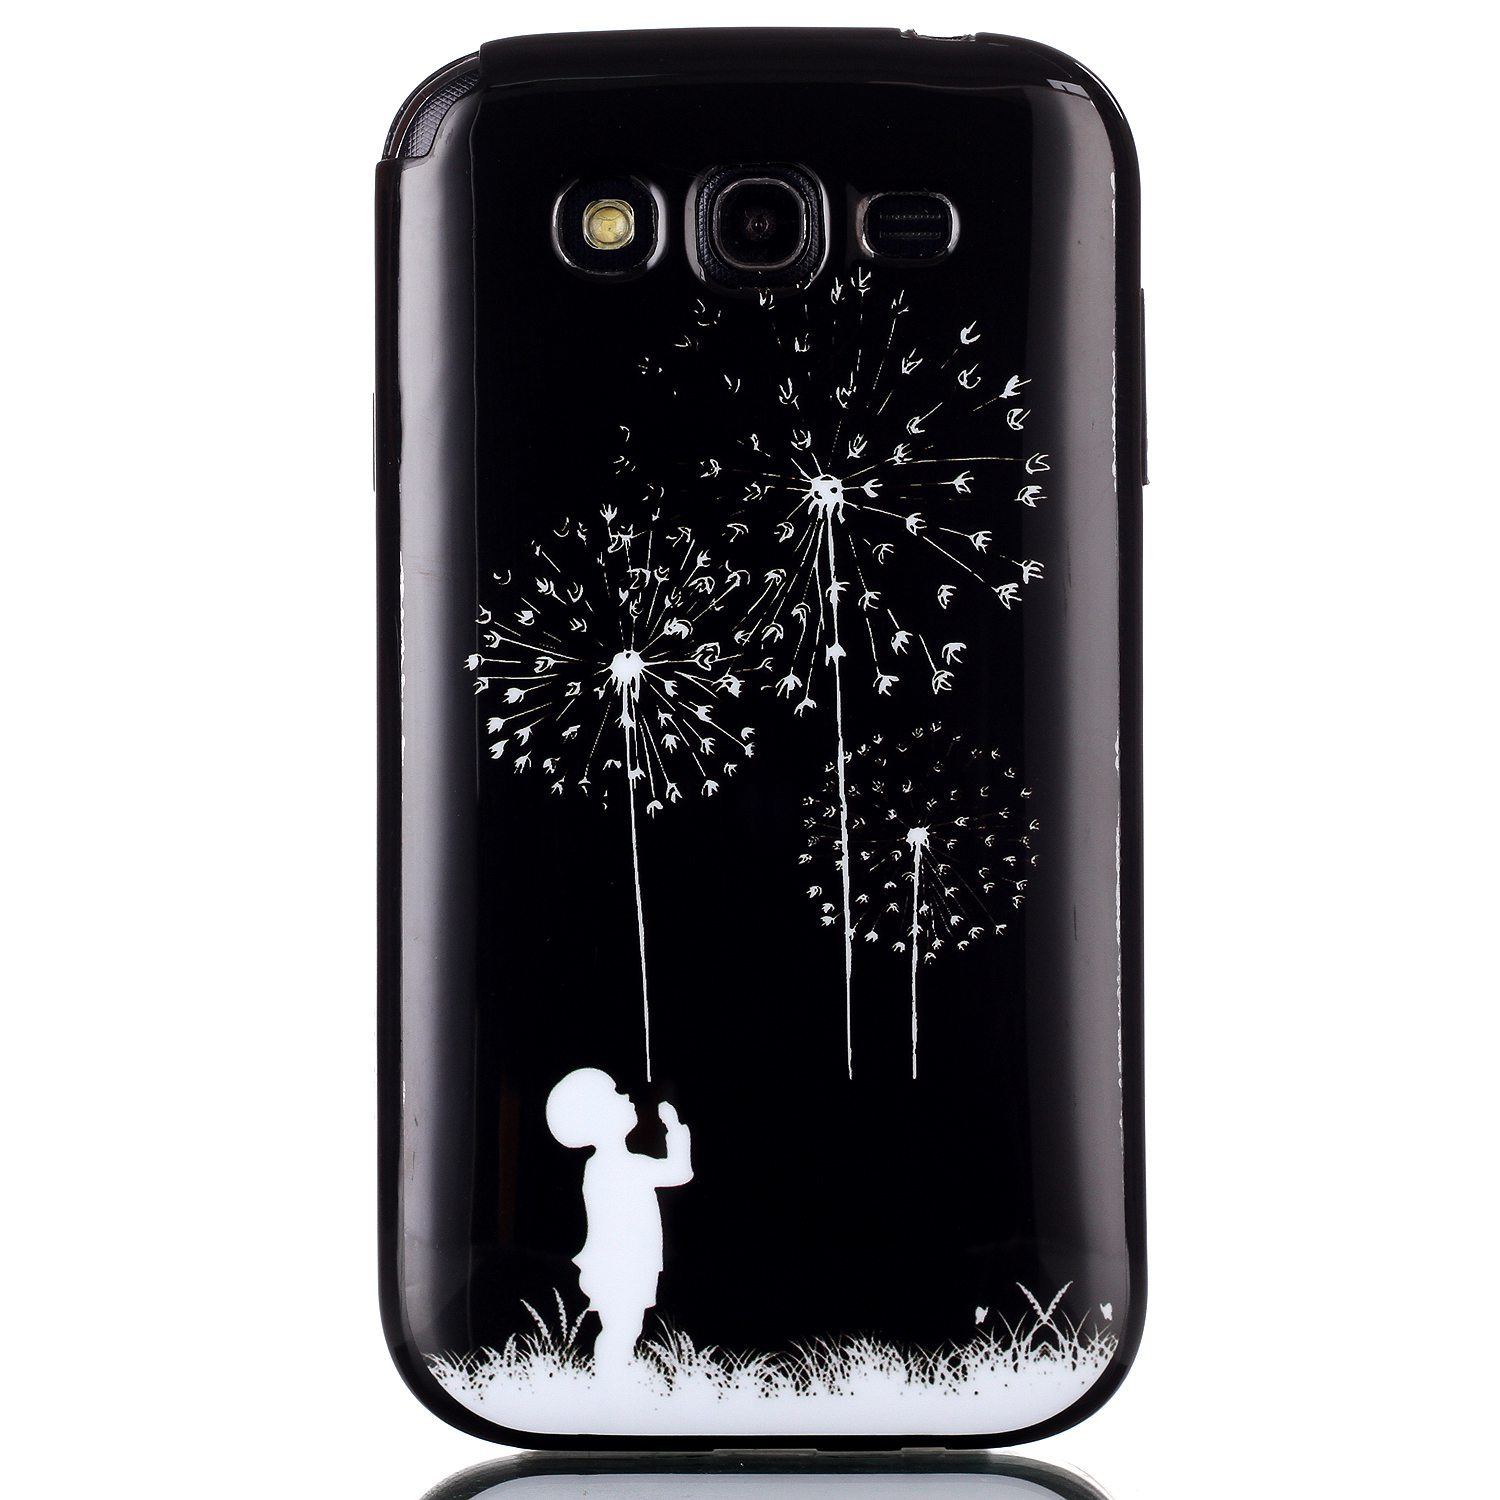 Philippines Tpu Soft Case For Samsung Galaxy Grand Neo I9060 Tempered Glass Duos I9082 Black